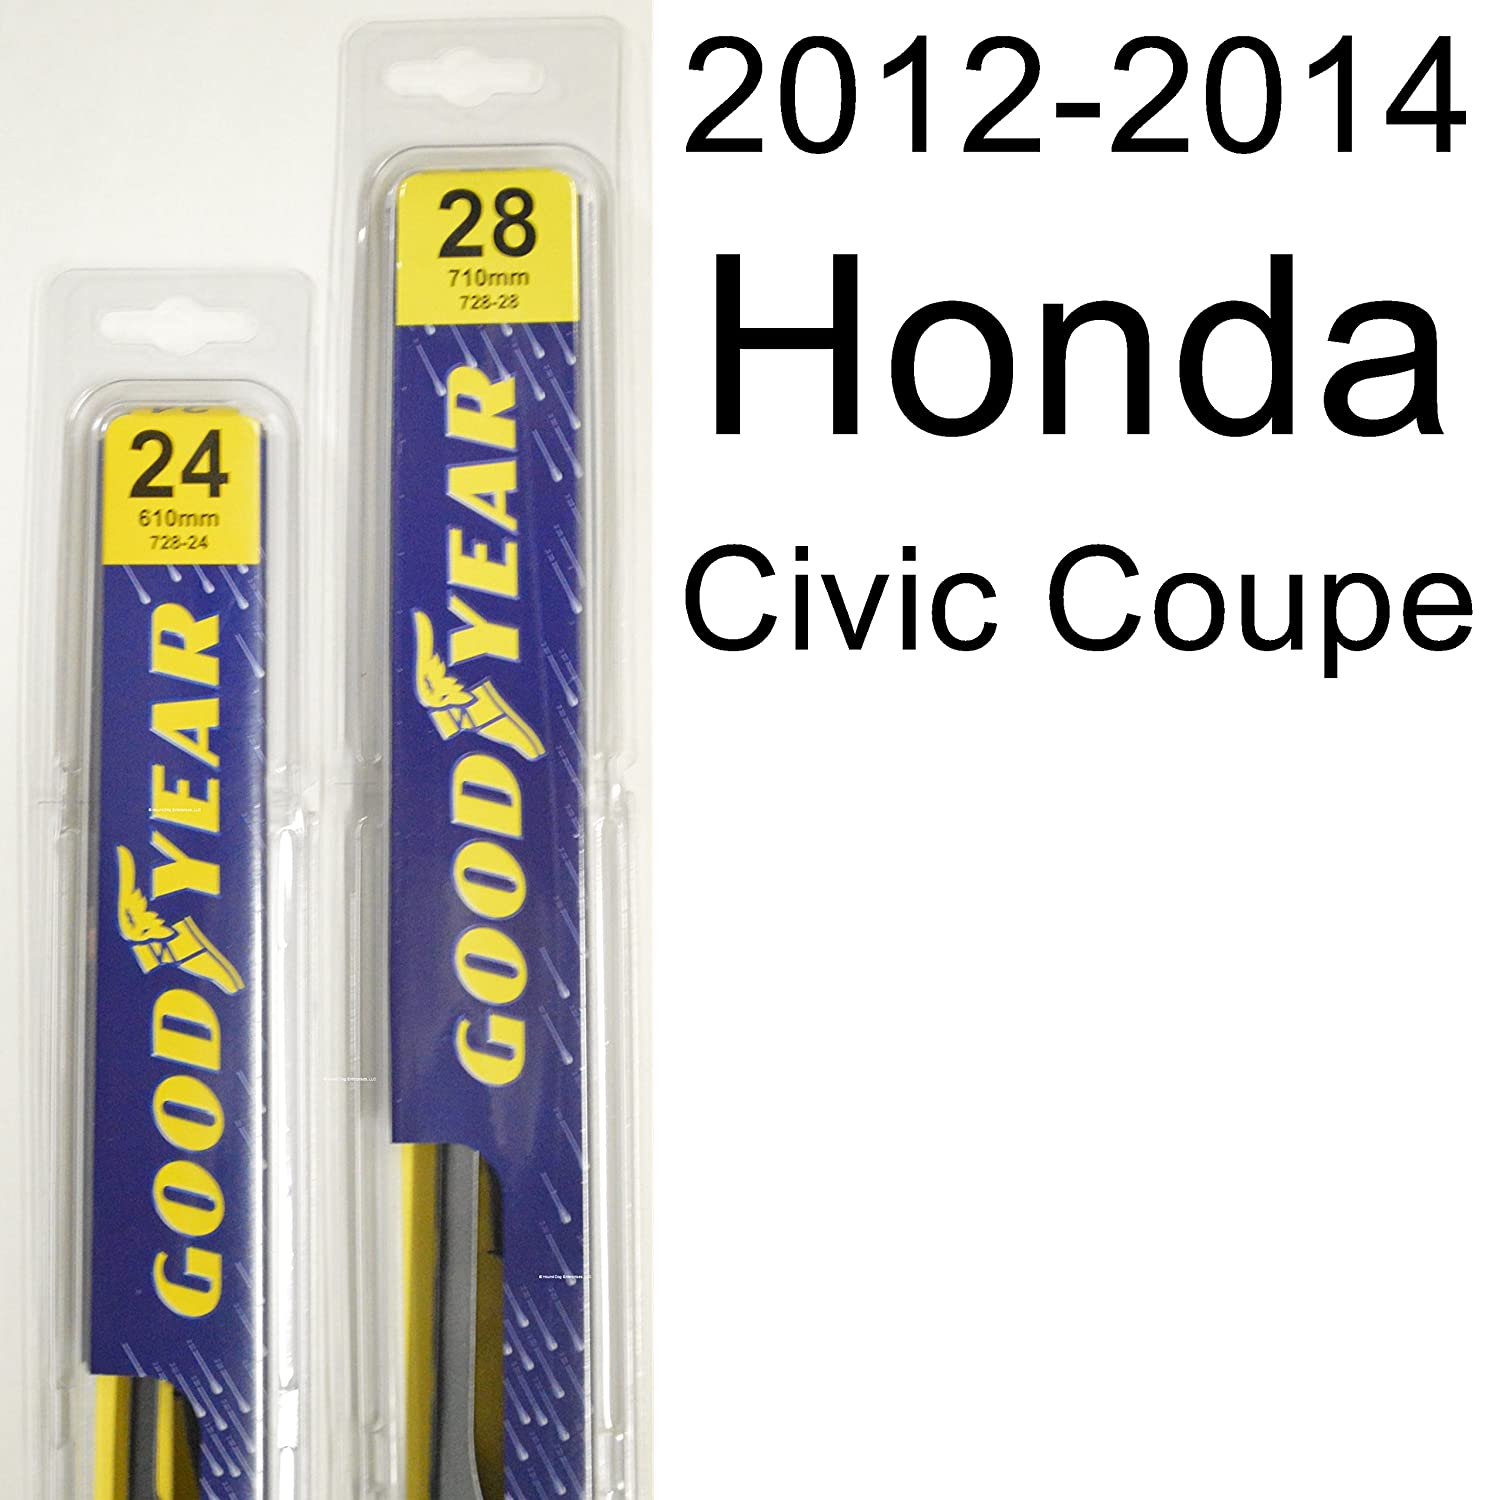 honda civic coupe 2012 2014 wiper blade kit set